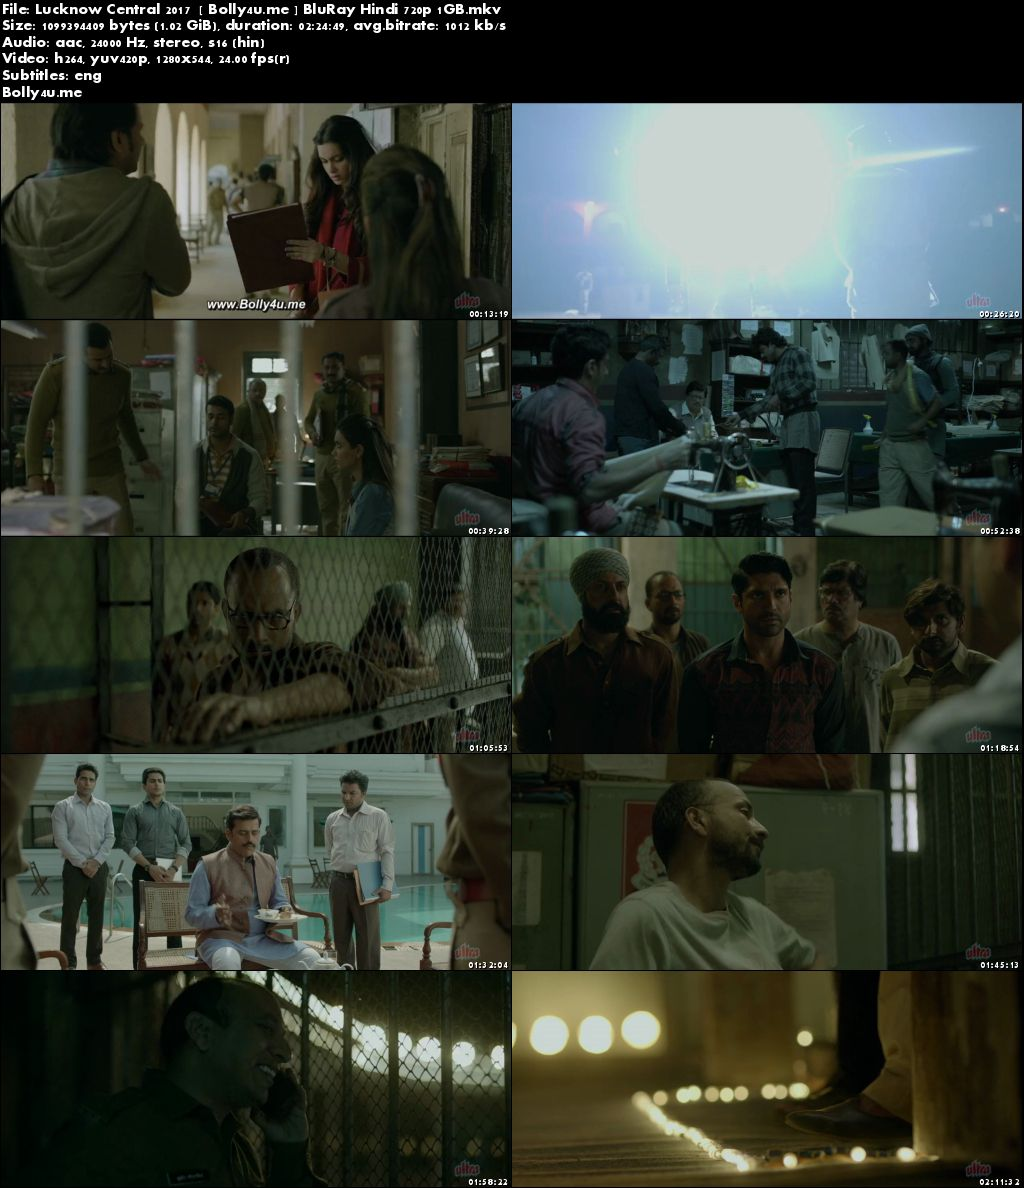 Lucknow Central 2017 BluRay 450MB Full Hindi Movie Download 480p ESub